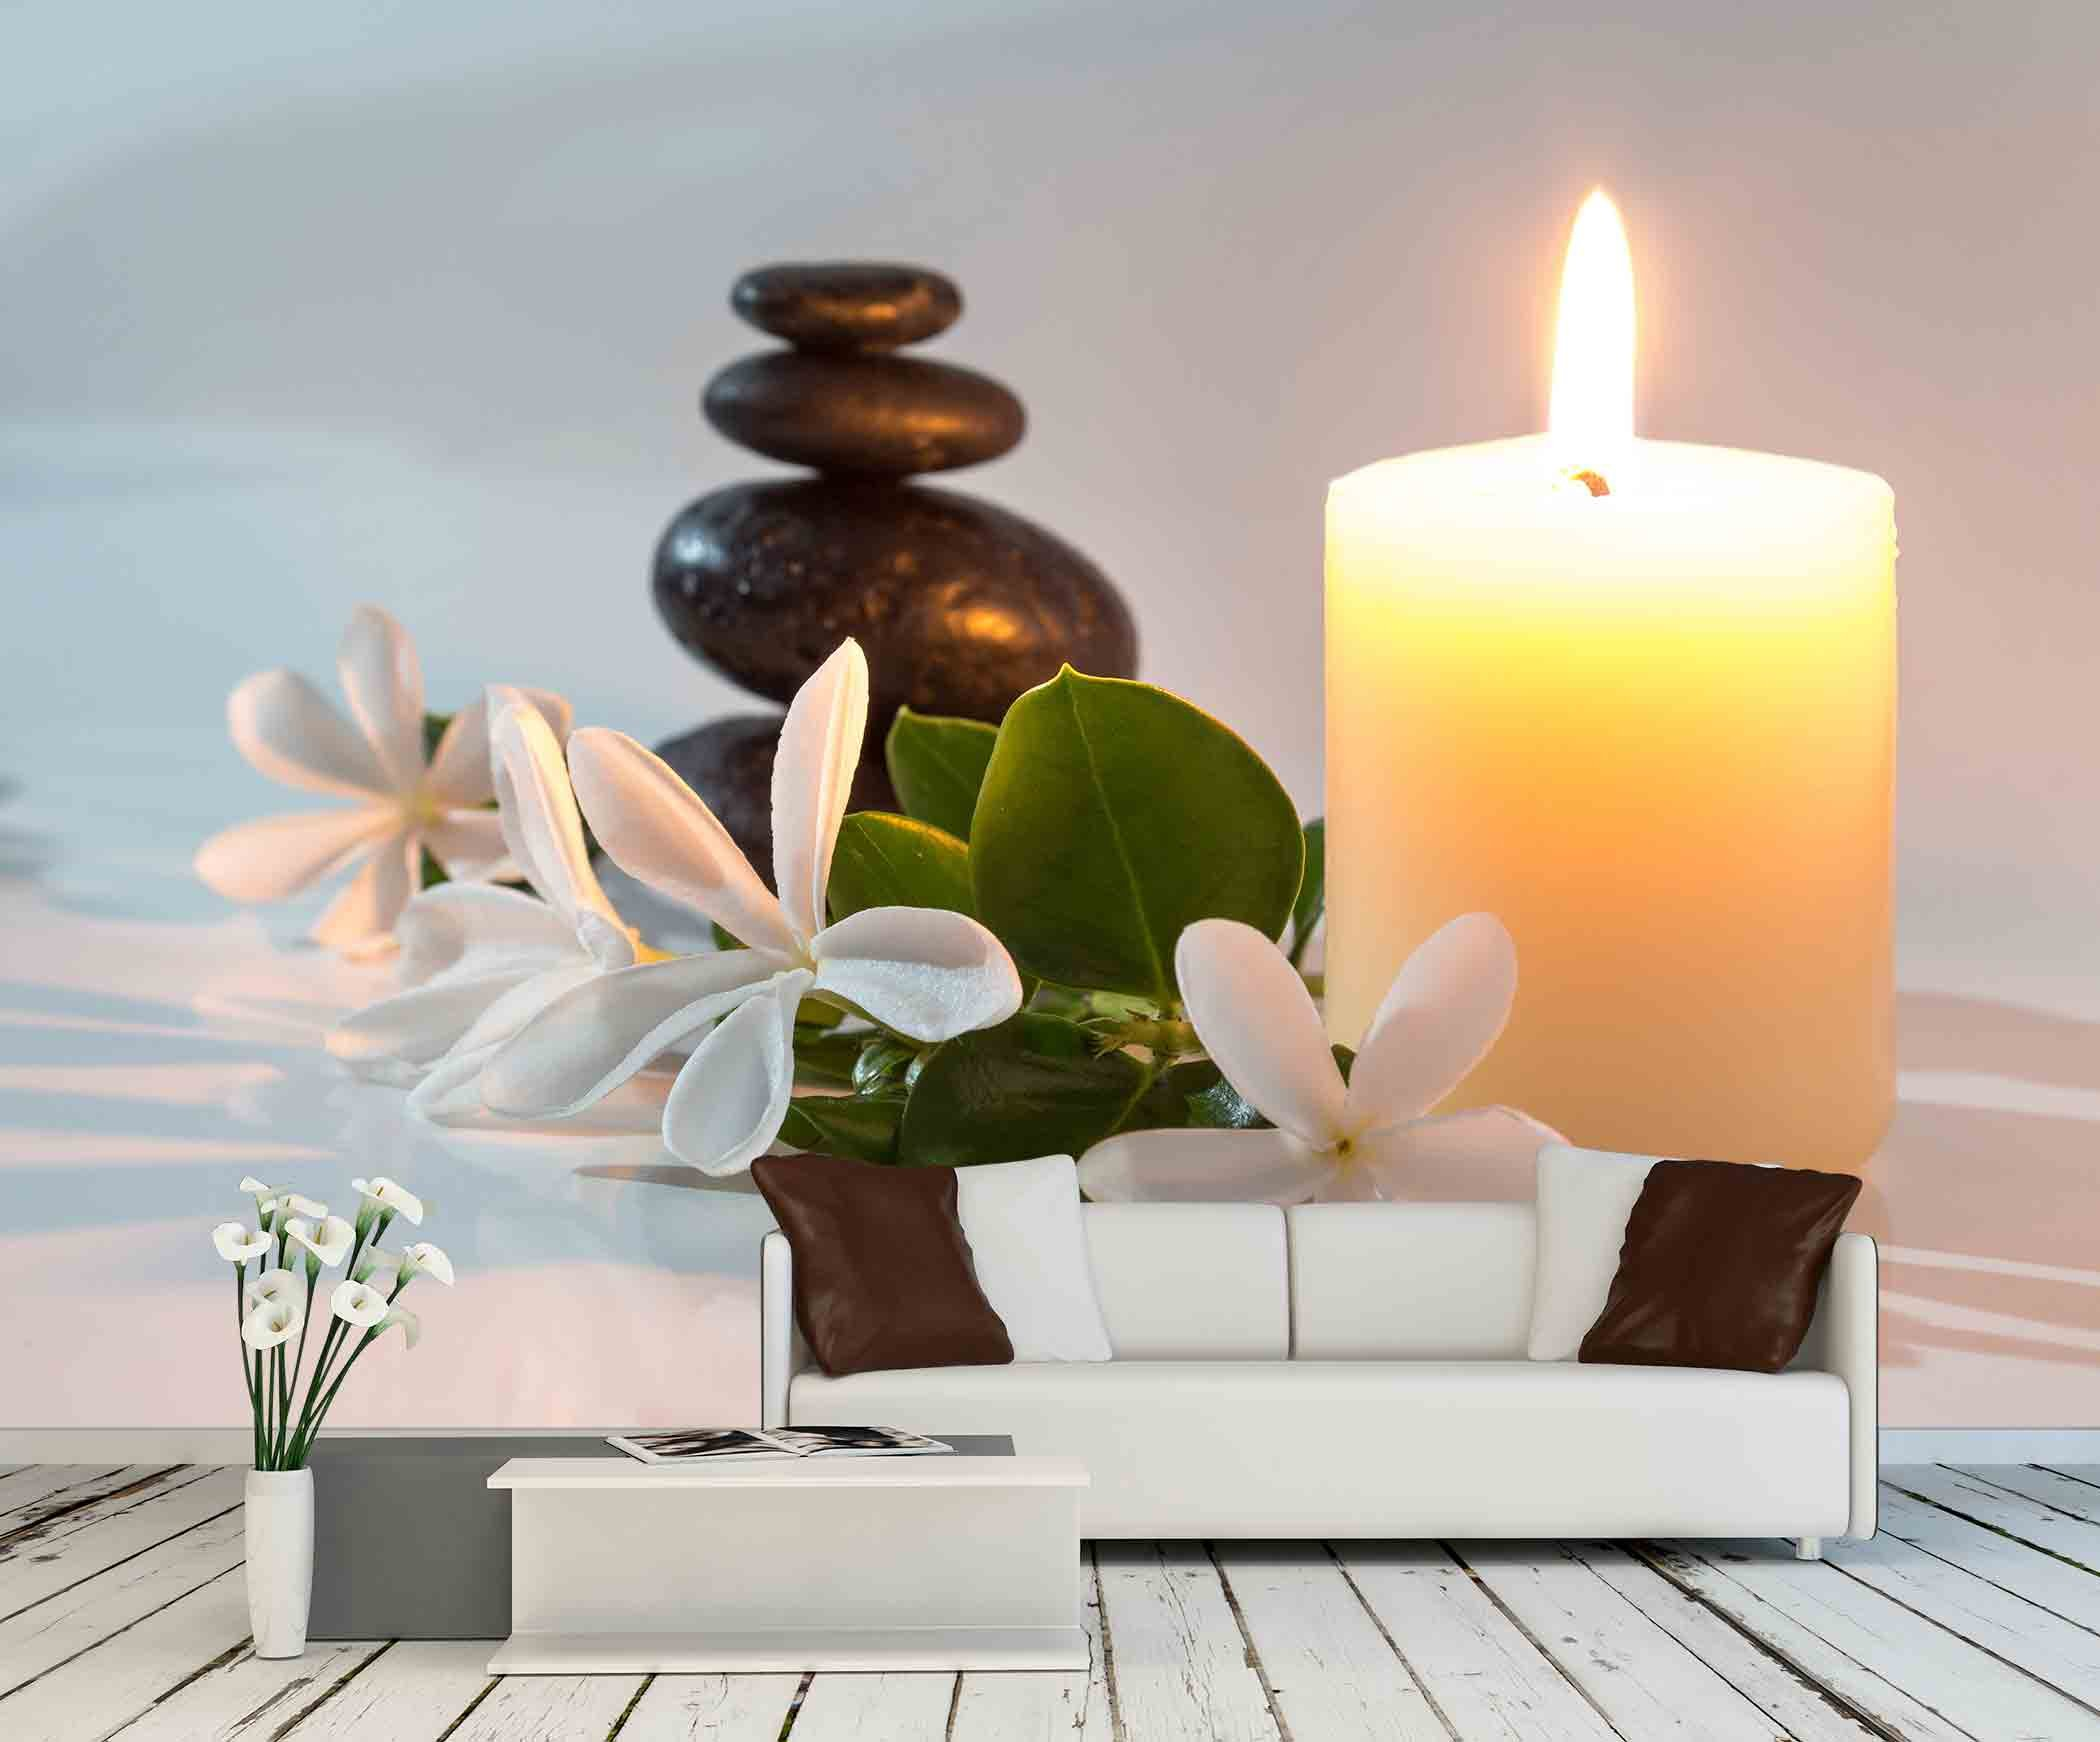 wall26 - Tiare Flowers, Candle and Black Stone Spa - Removable Wall Mural | Self-adhesive Large Wallpaper - 66x96 inches